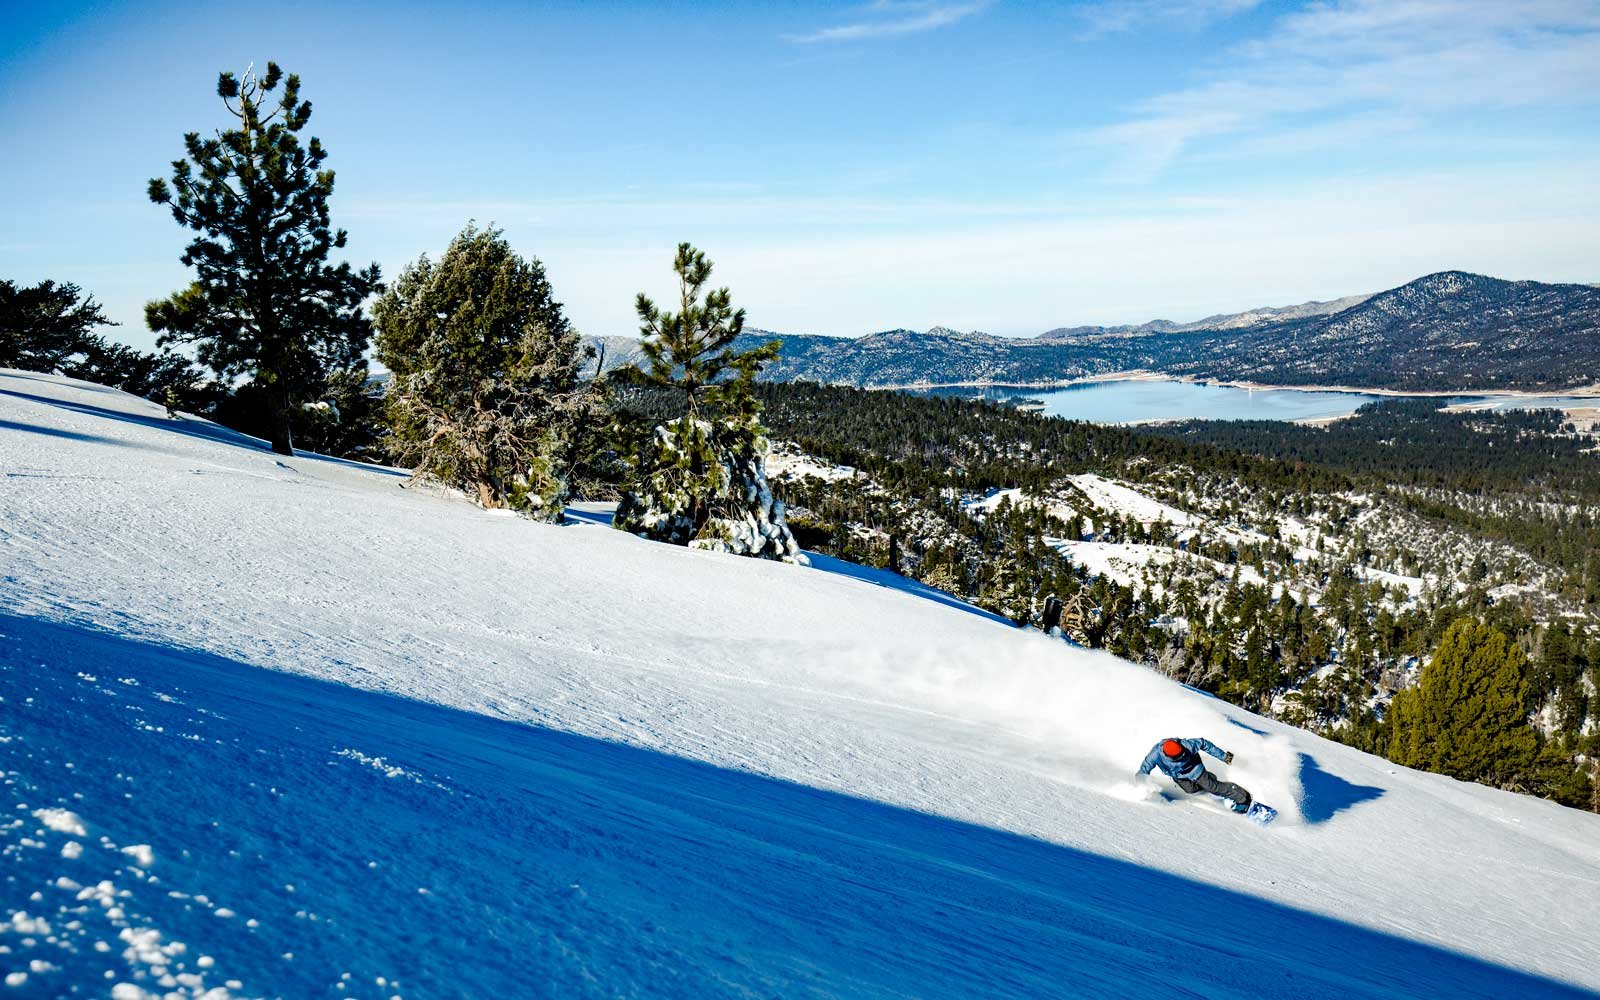 Things to do in Big Bear in the winter